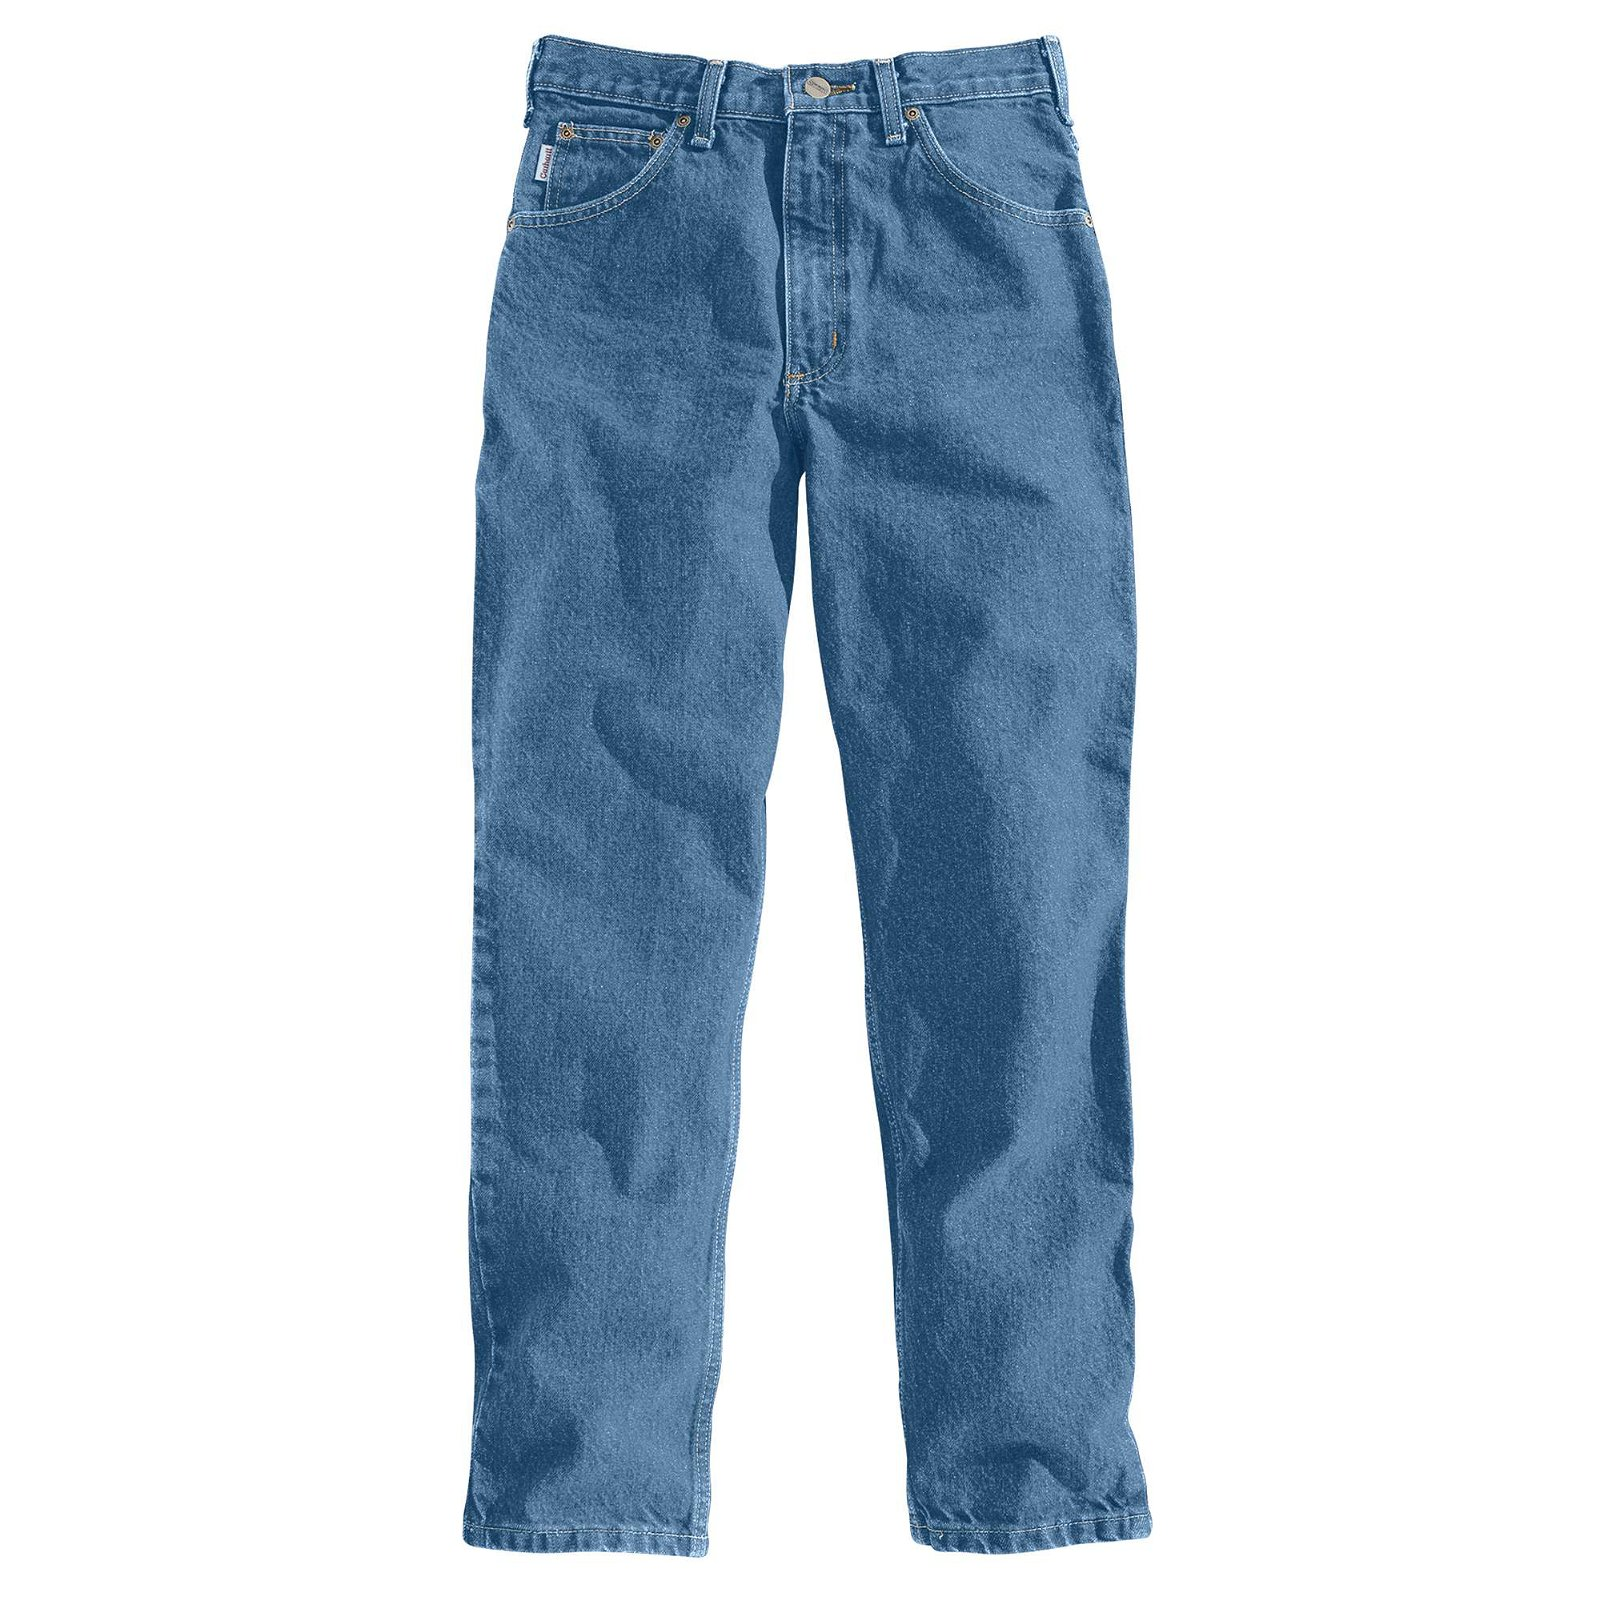 MEN'S RELAXED FIT TAPERED LEG JEAN